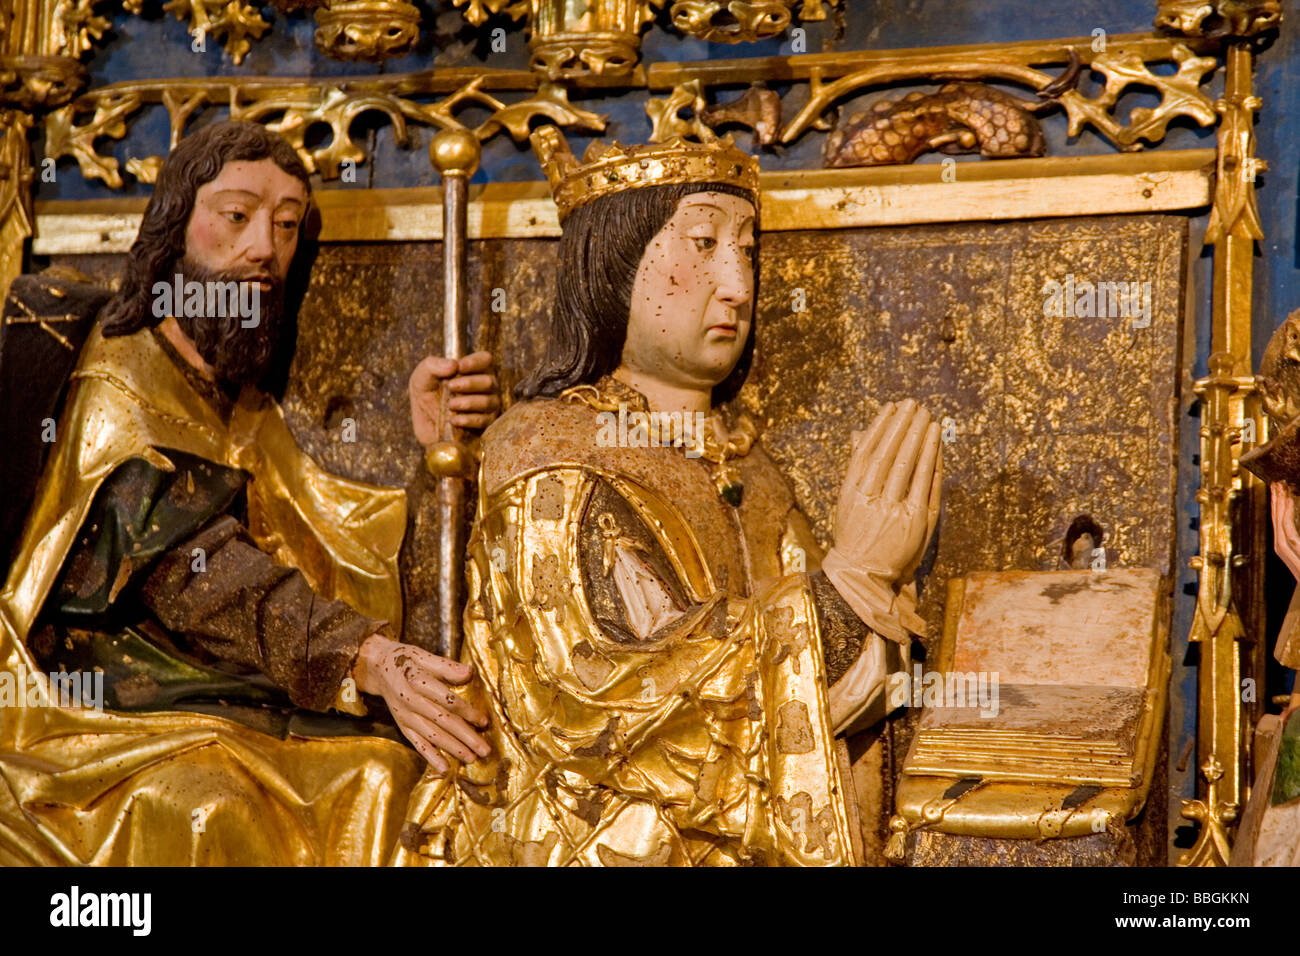 Altarpiece in the Cartuja Santa María de Miraflores in Burgos Castilla Leon Spain - Stock Image